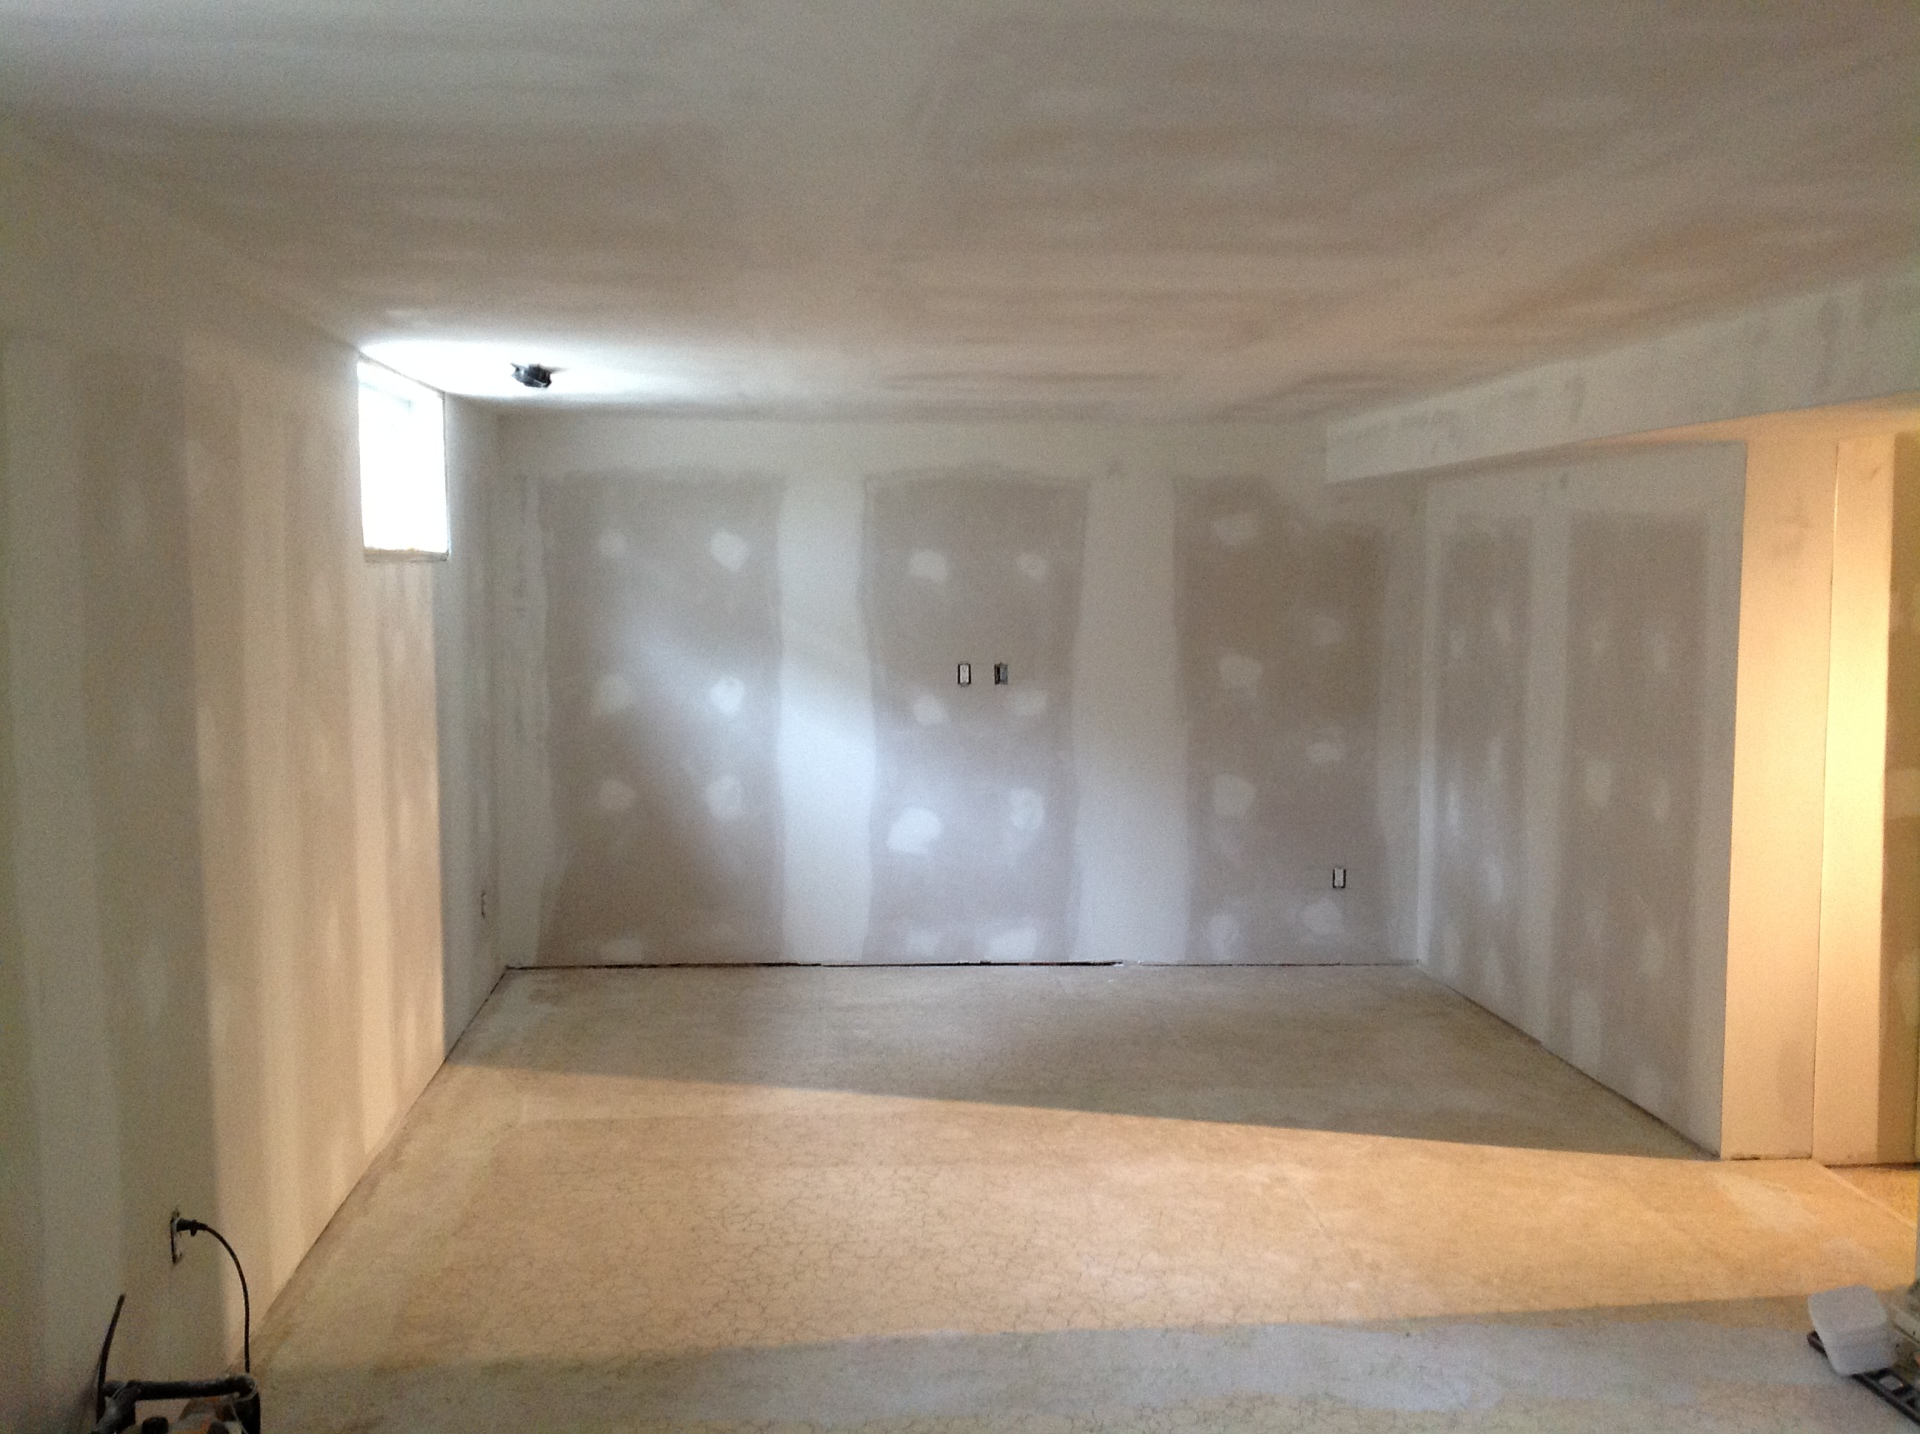 Basement Drywall and plastered